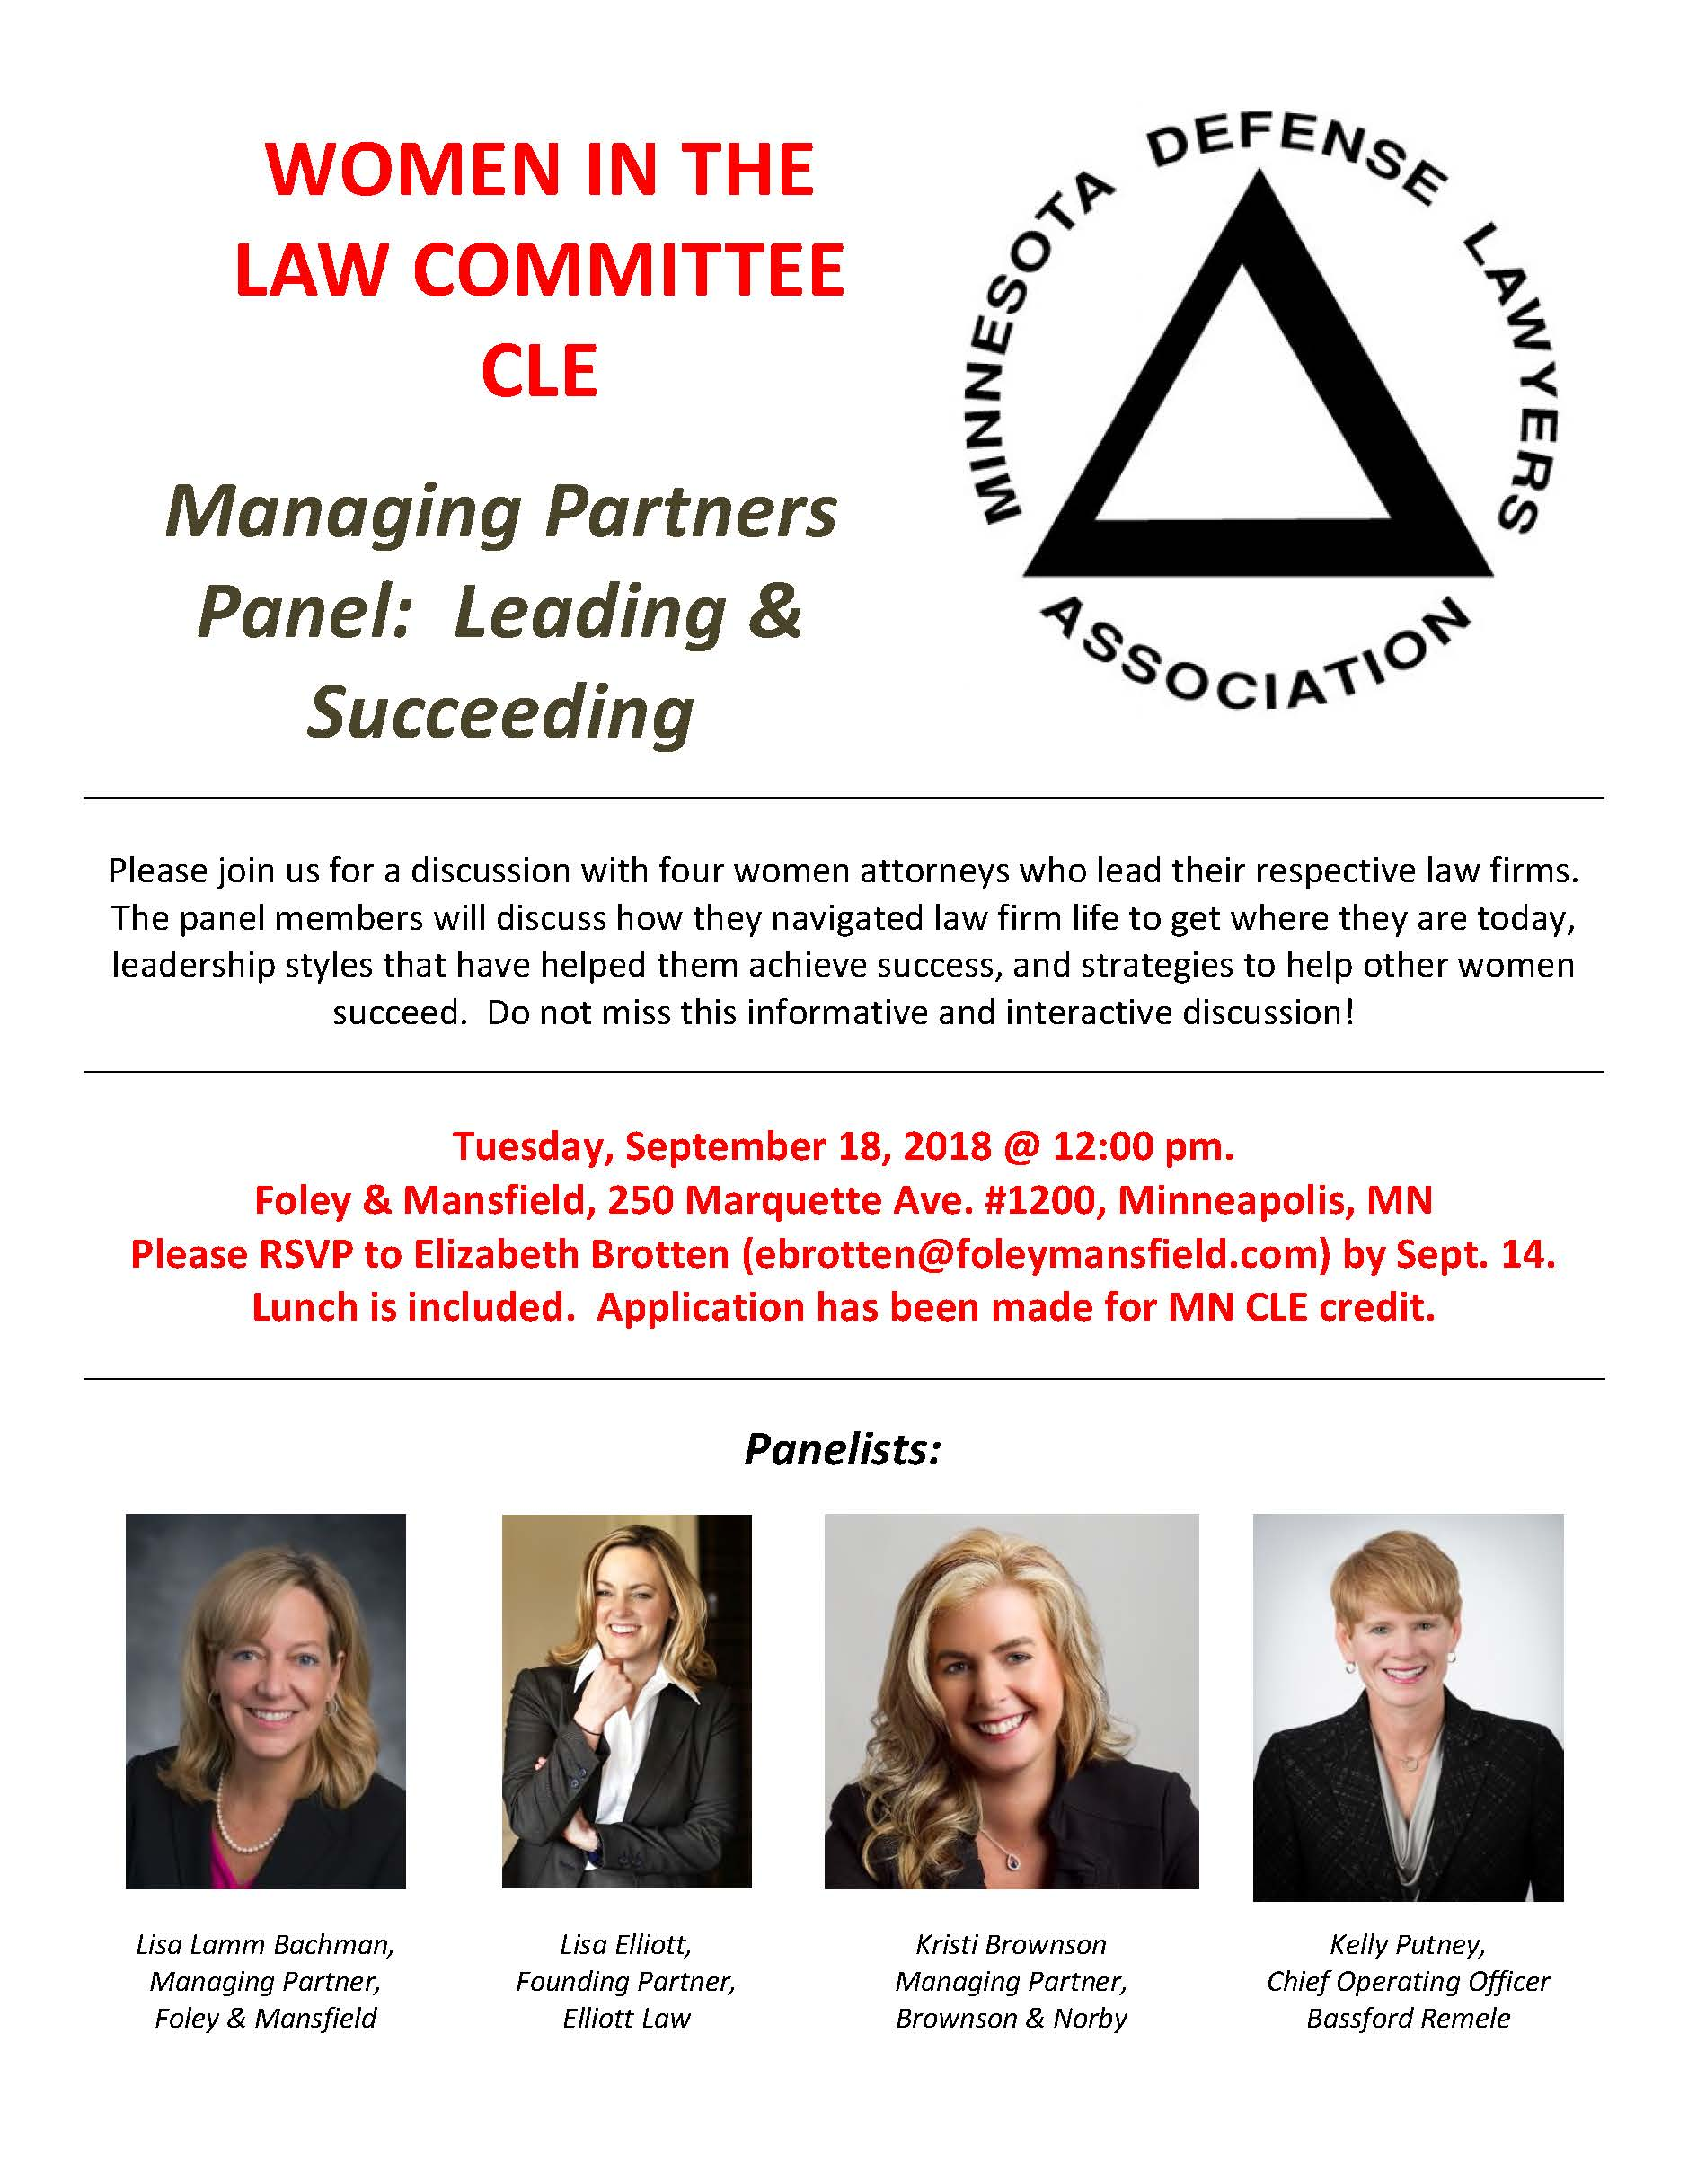 Women in the Law Committee